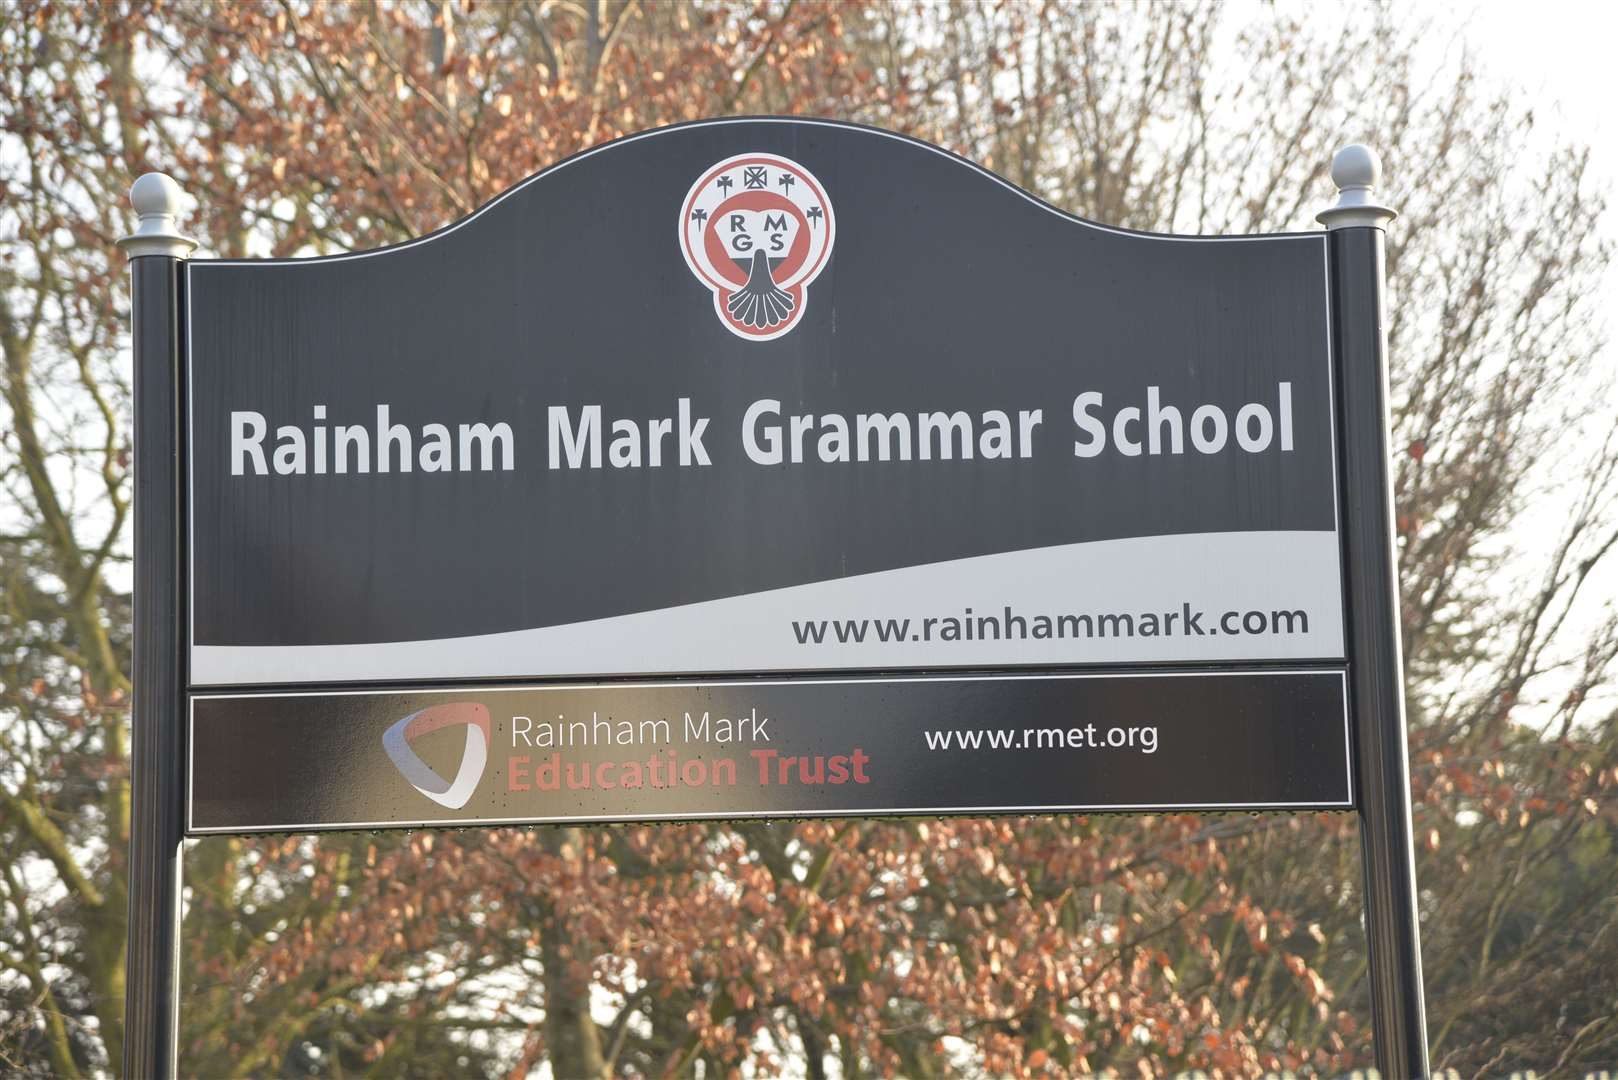 Rainham Mark Grammar School is one member of Rainham Mark Education Trust